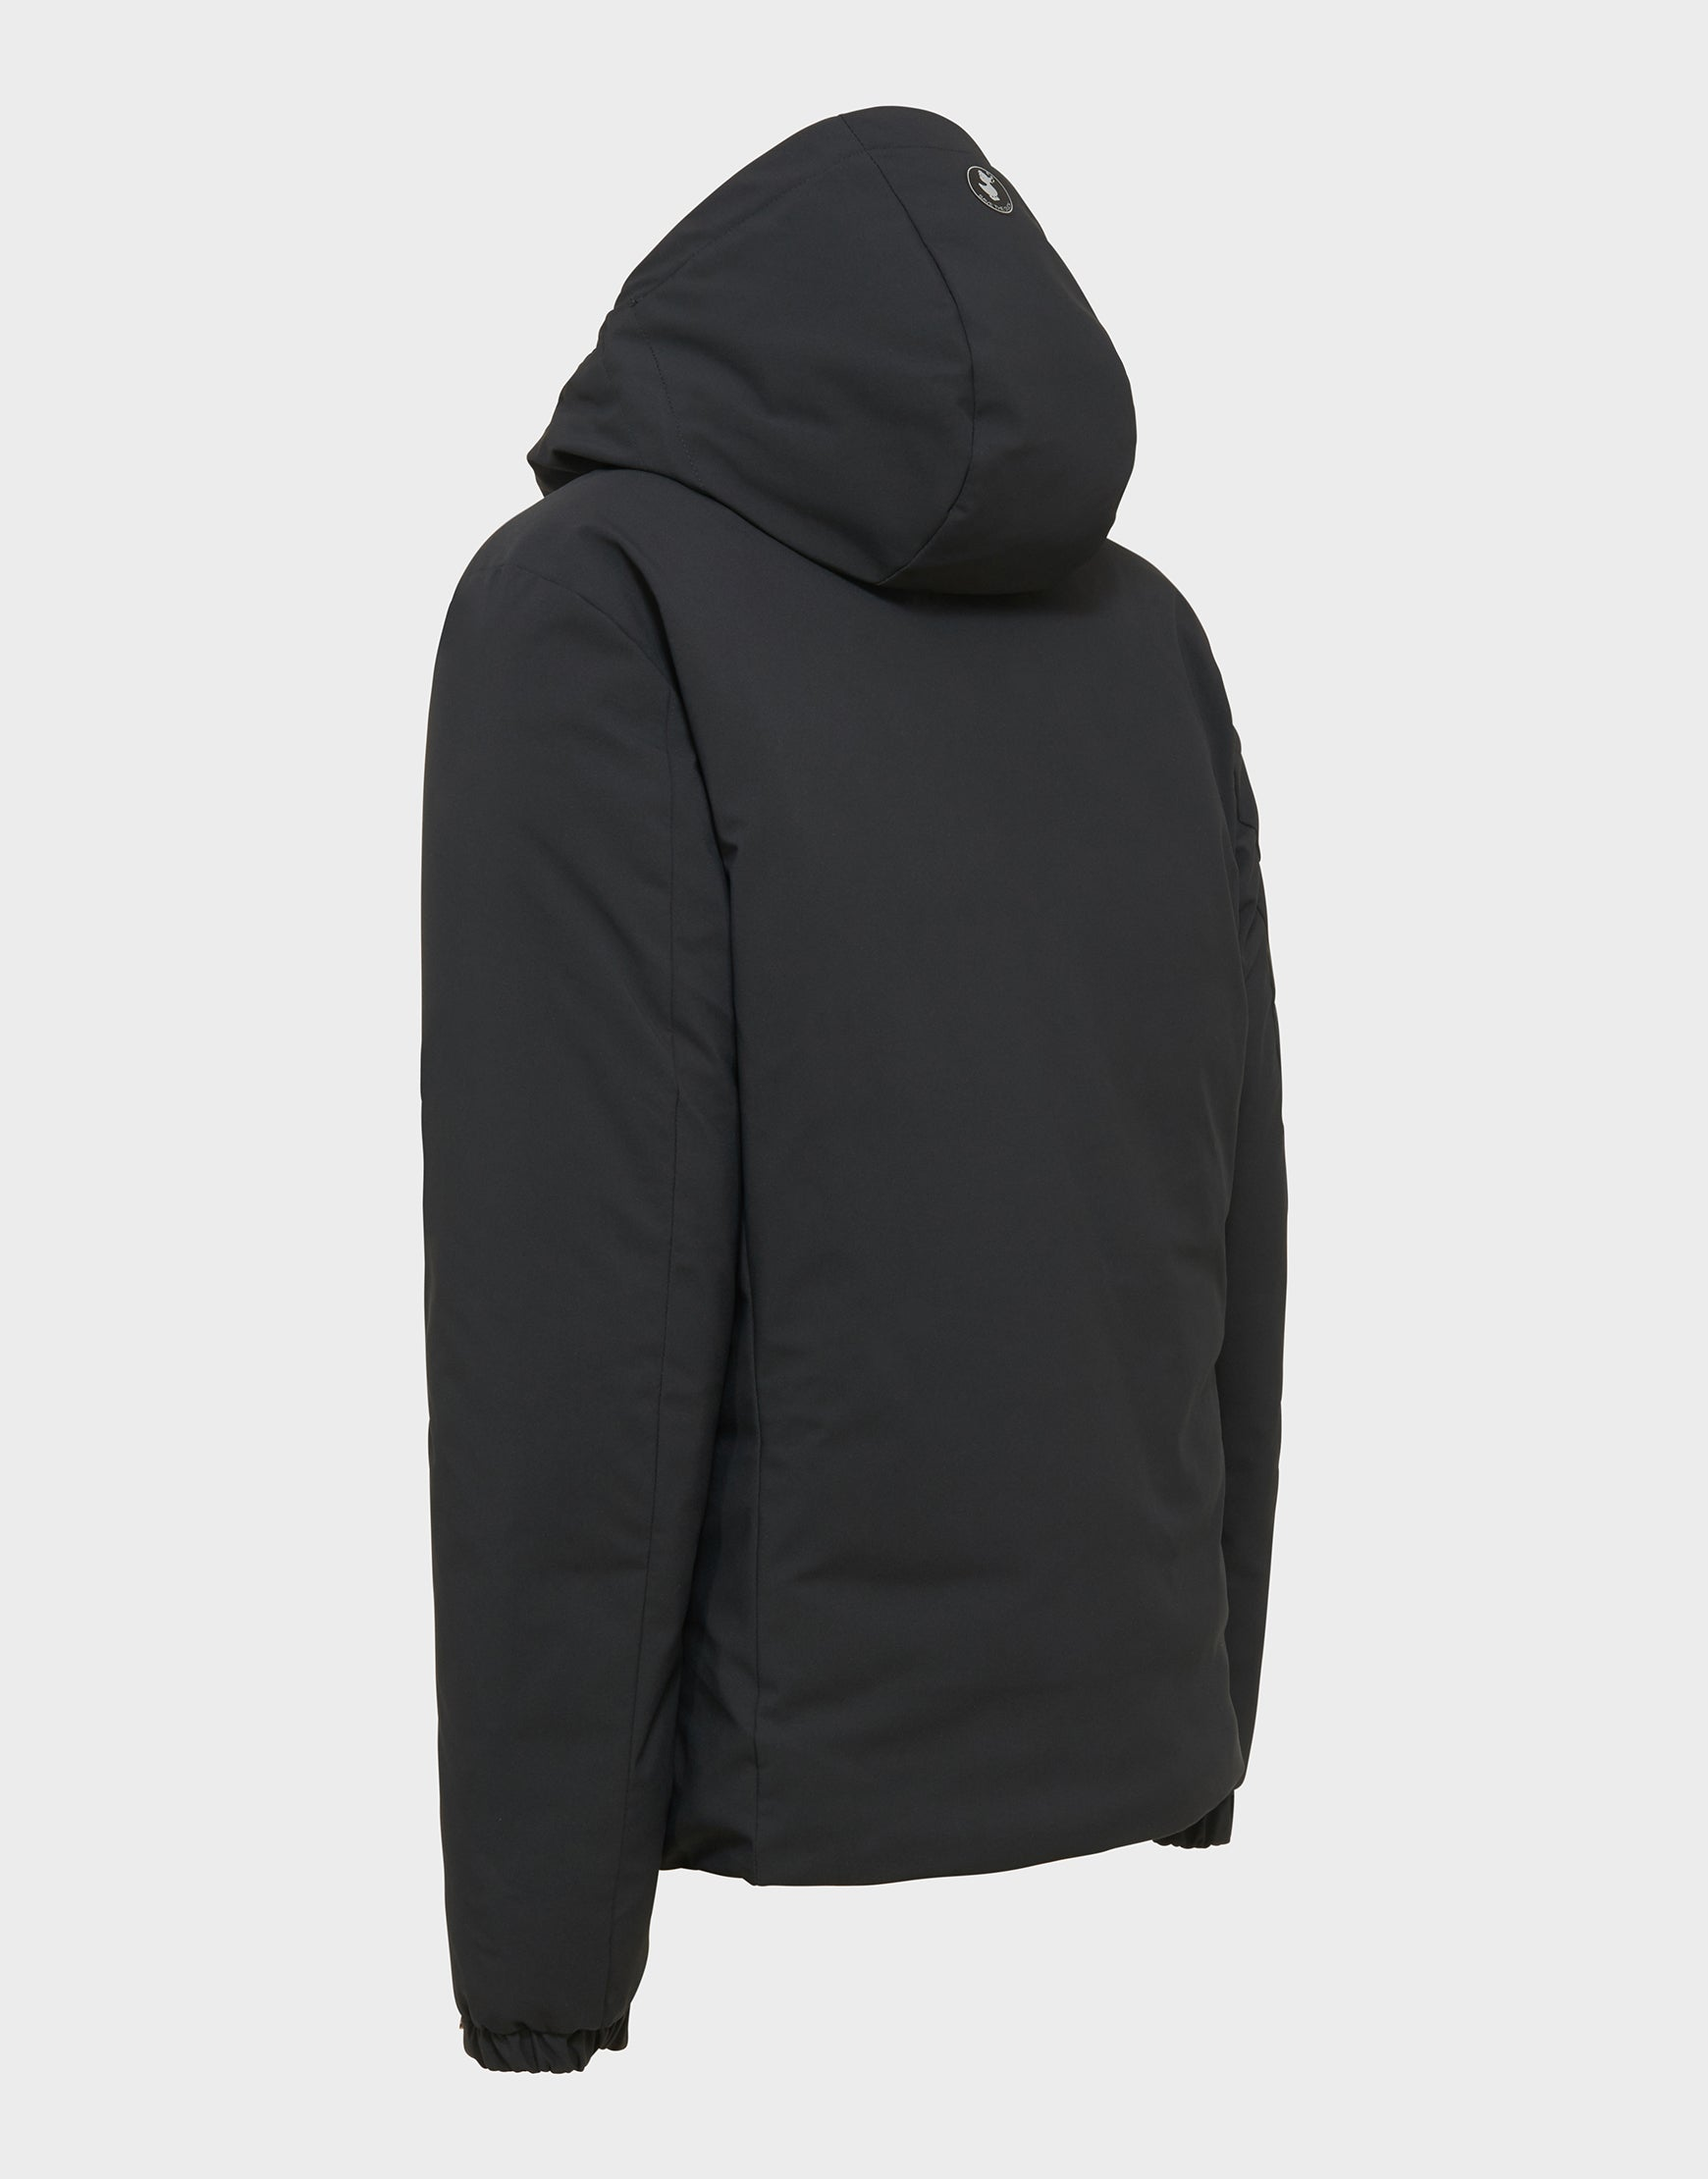 Mens SMEG Winter Hooded Jacket in Black